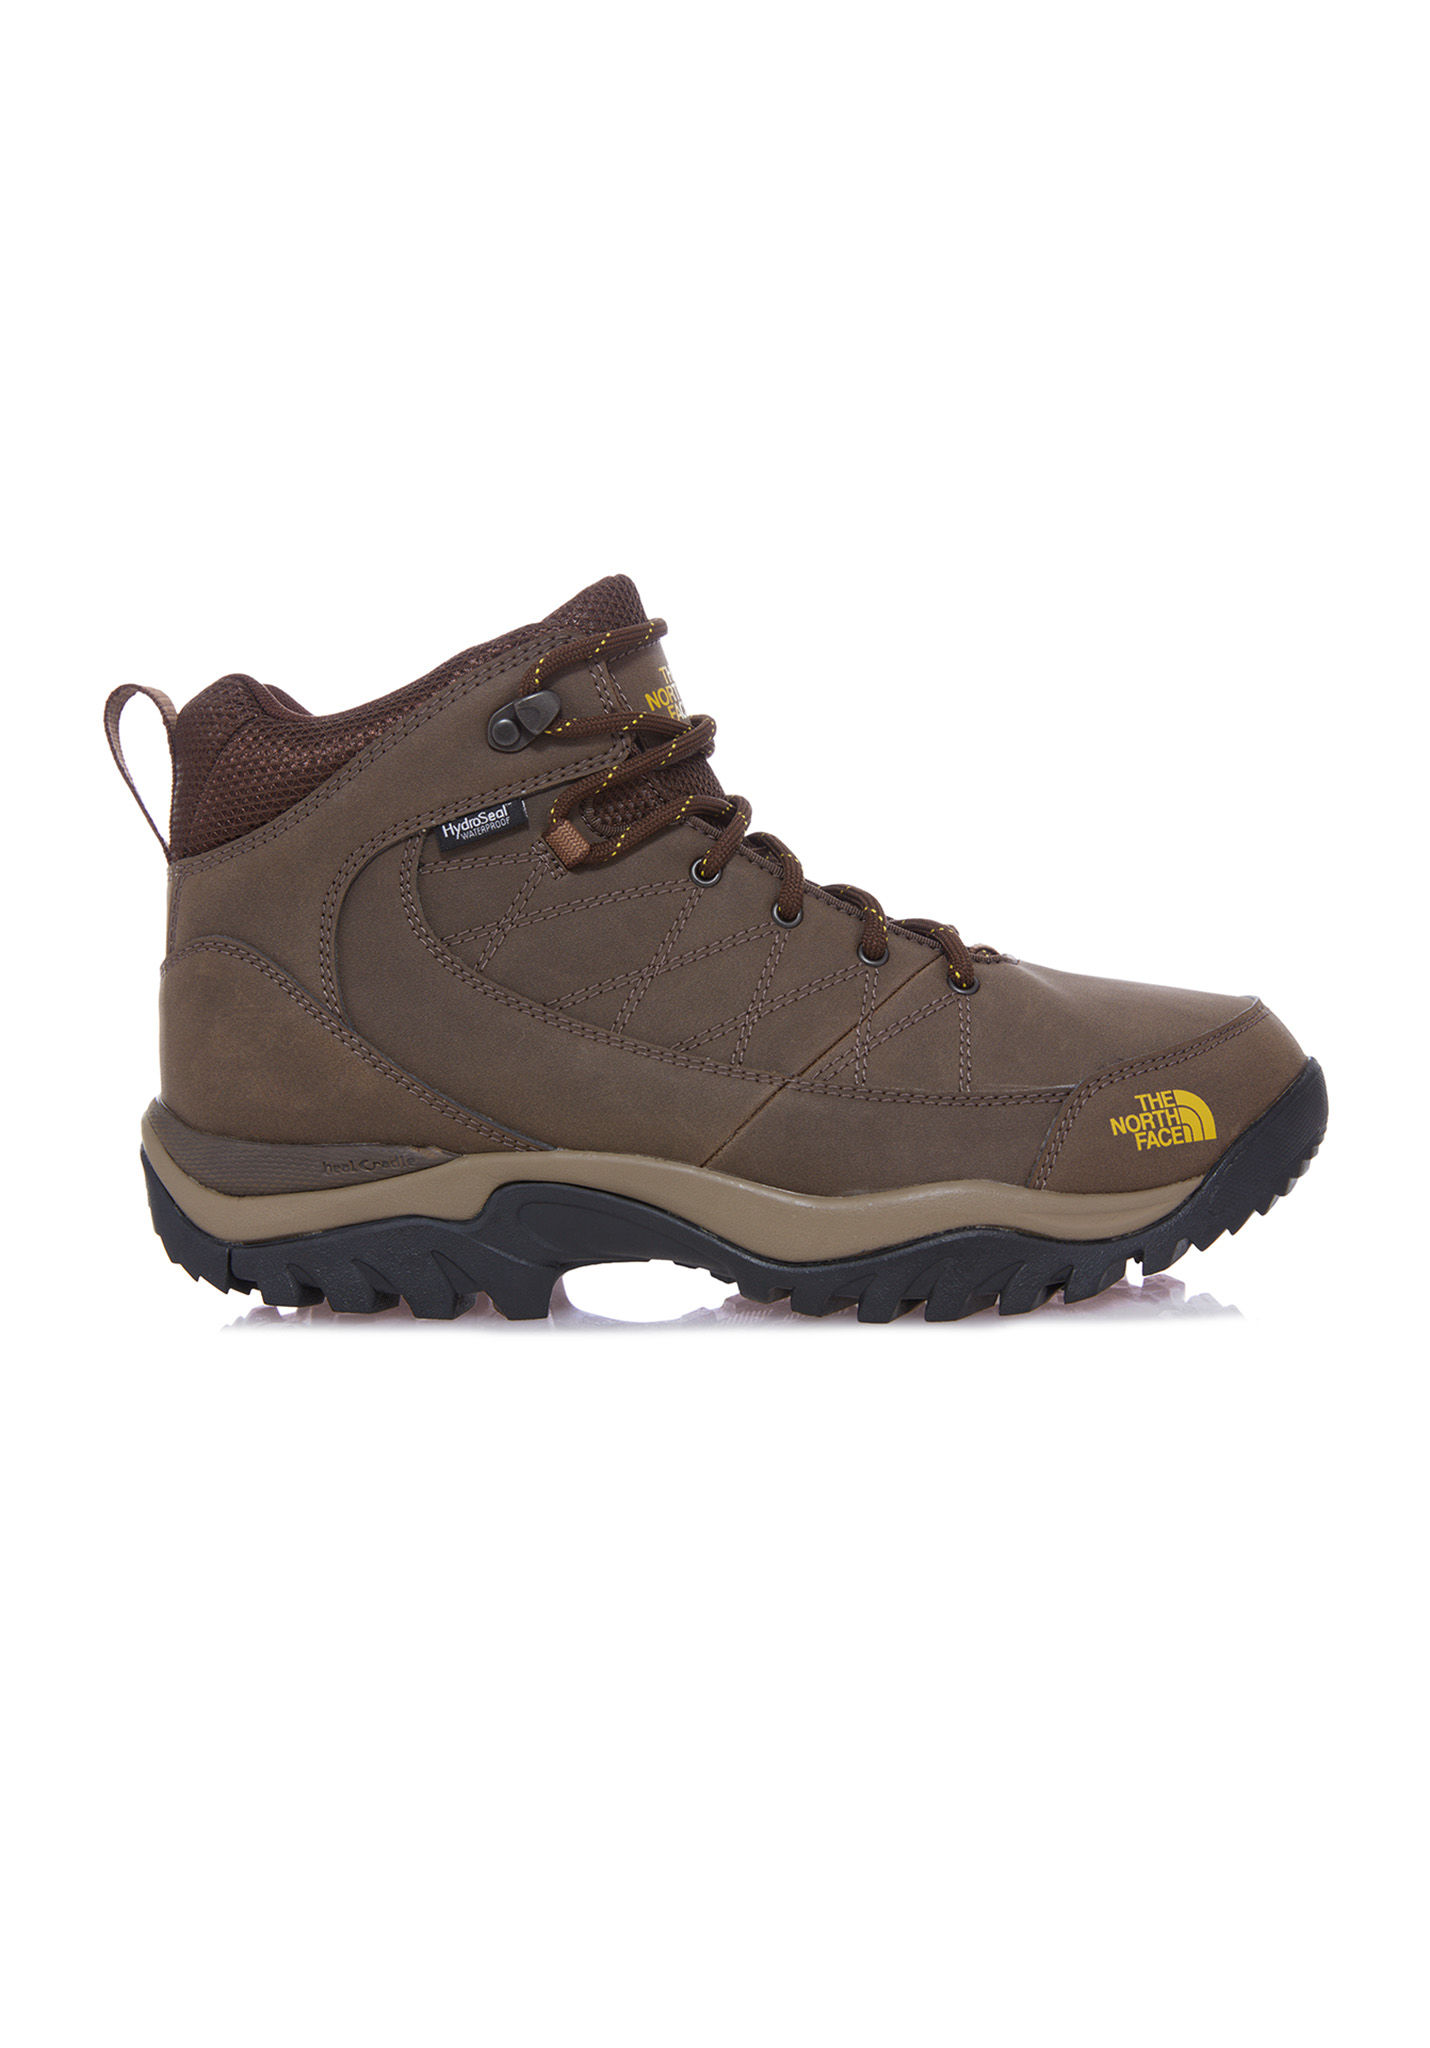 49e568983 THE NORTH FACE Storm Strike Wp - Hiking Shoes for Men - Brown